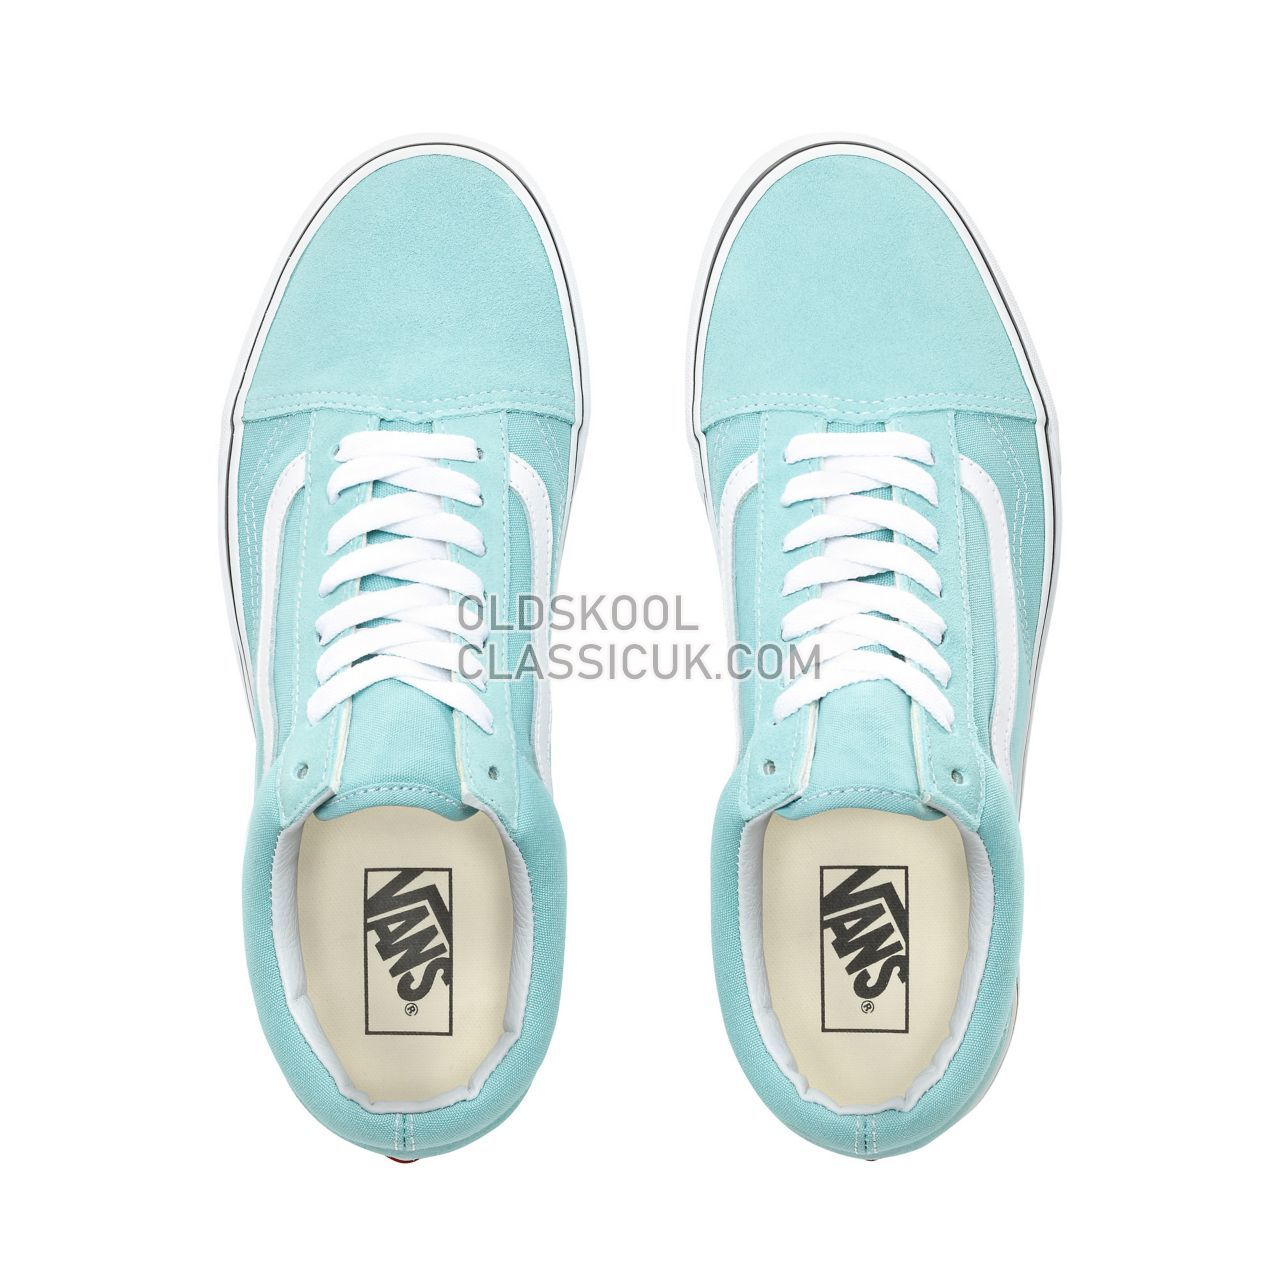 Vans Old Skool Sneakers Mens Womens Unisex Aqua Haze/True White VN0A38G1VKQ Shoes